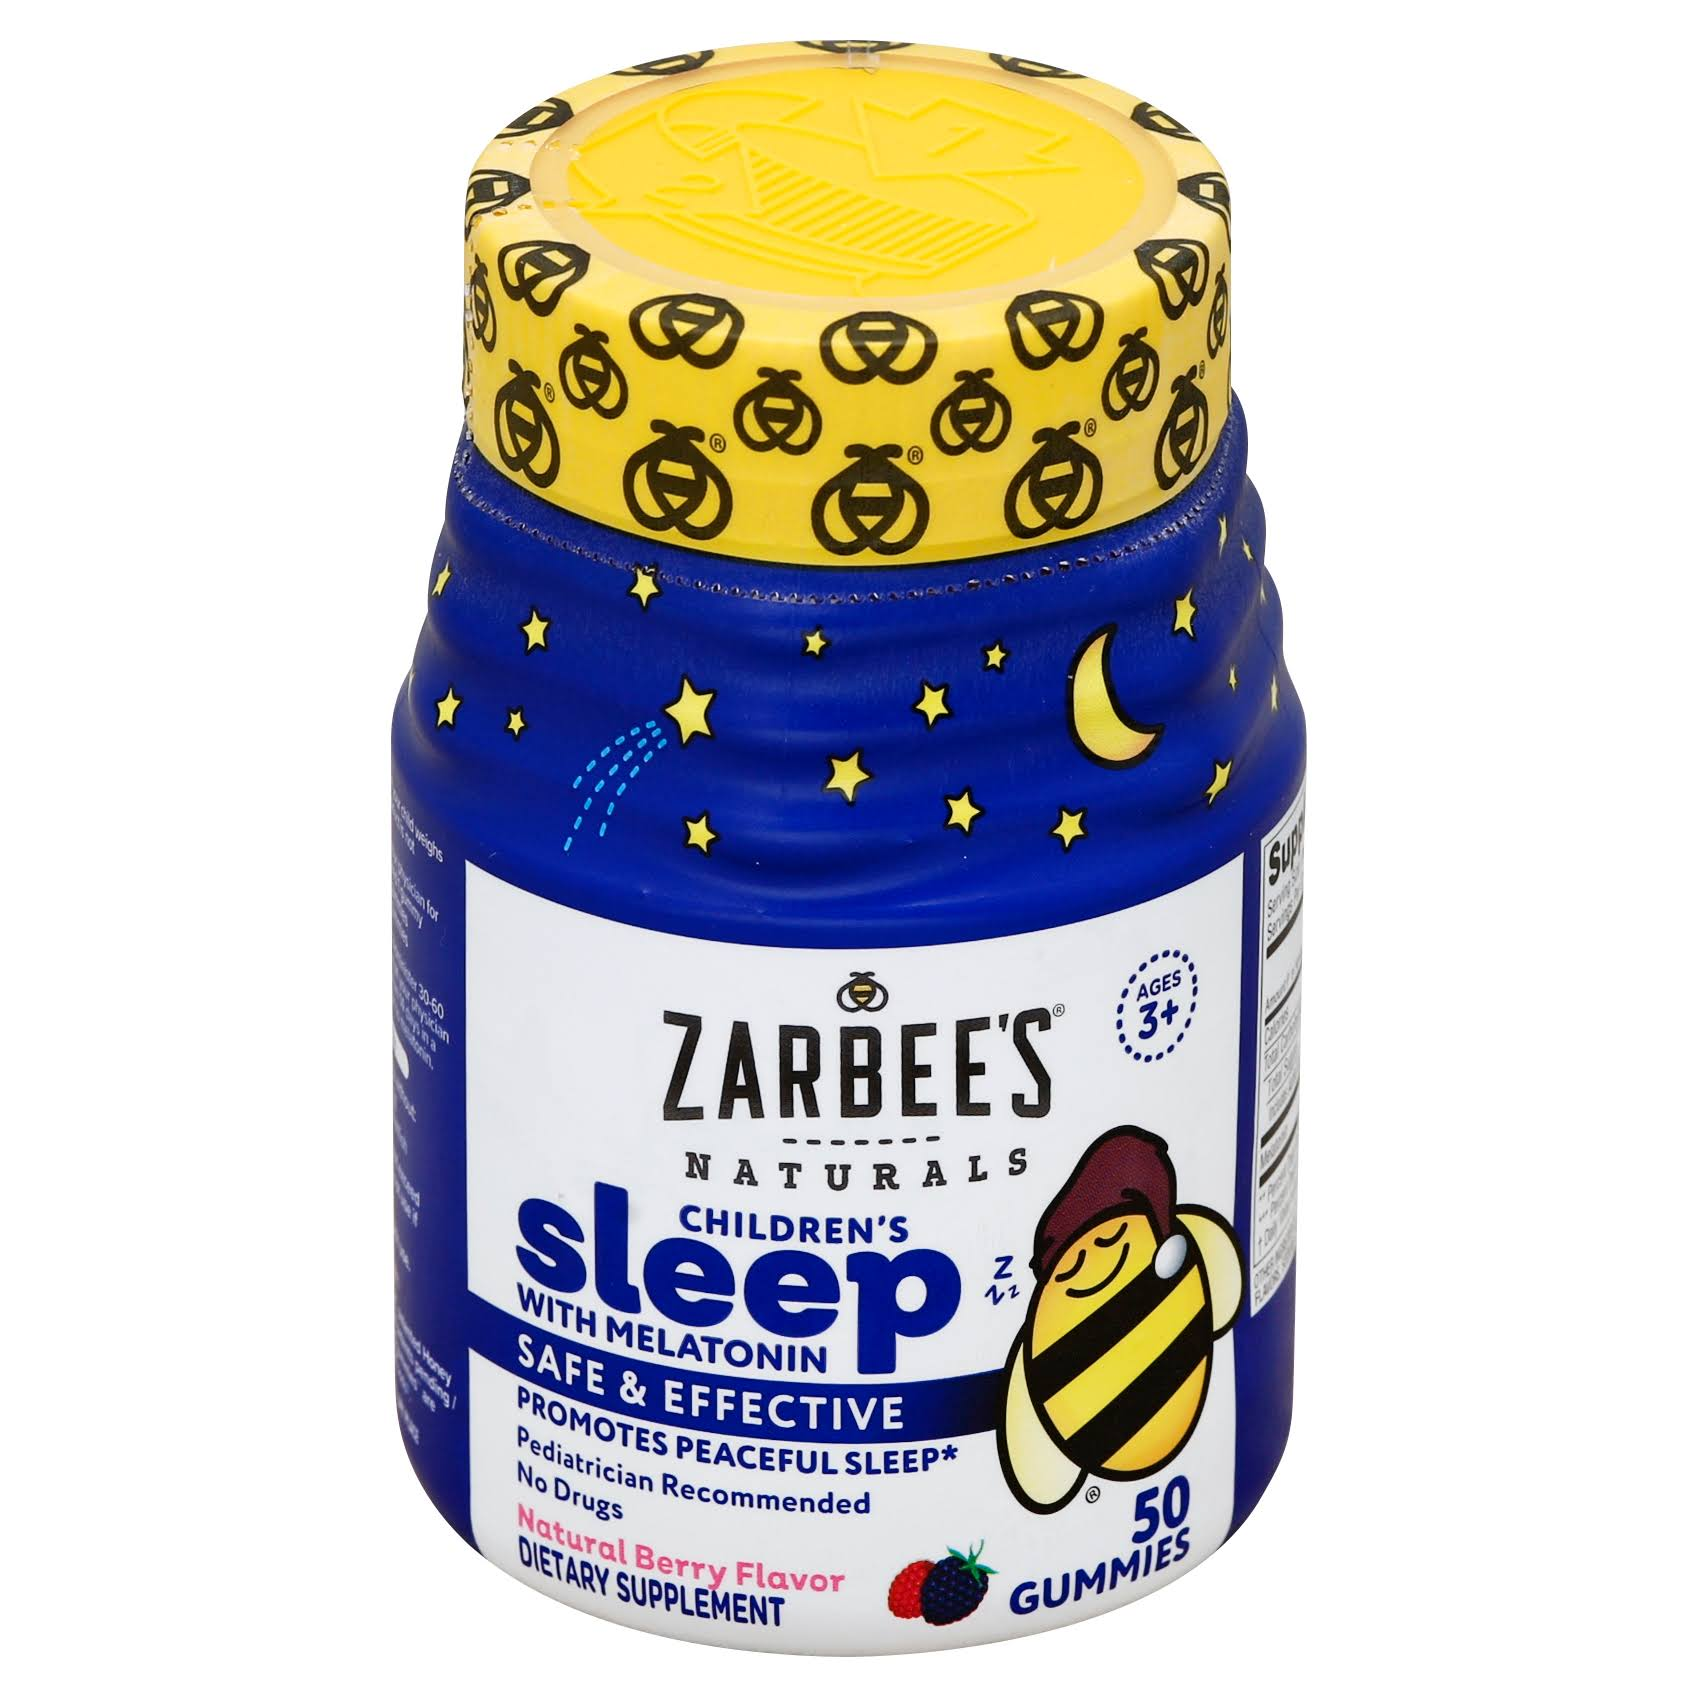 Zarbee's Naturals Children's Sleep with Melatonin Dietary Supplement - Mixed Fruit, 50ct